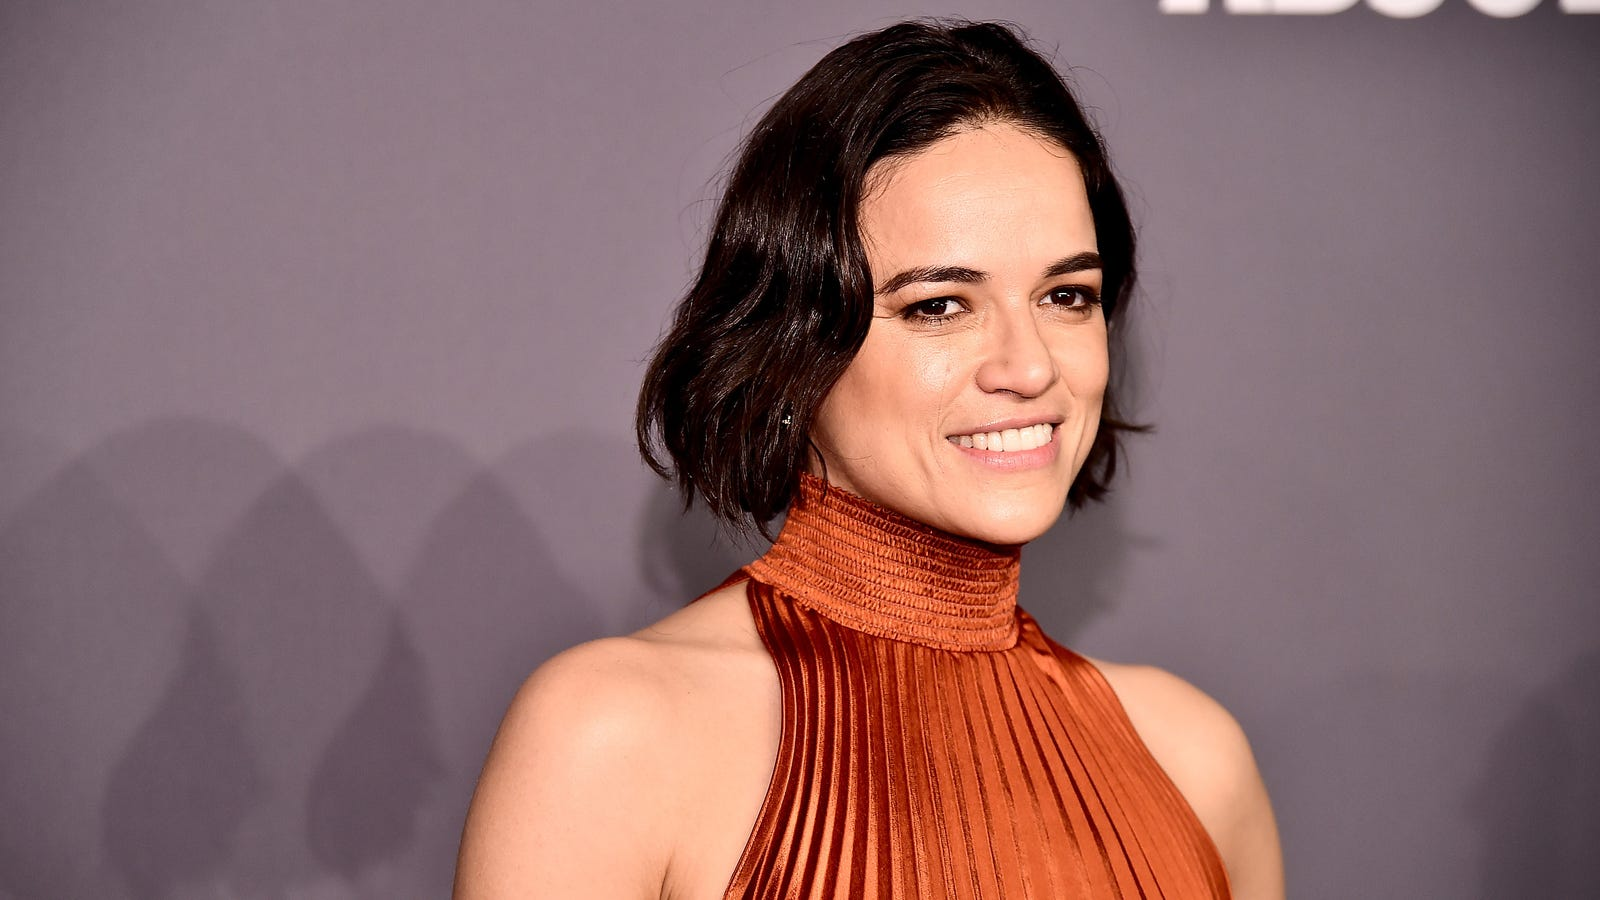 Fine, Michelle Rodriguez will do another Fast And Furious movie